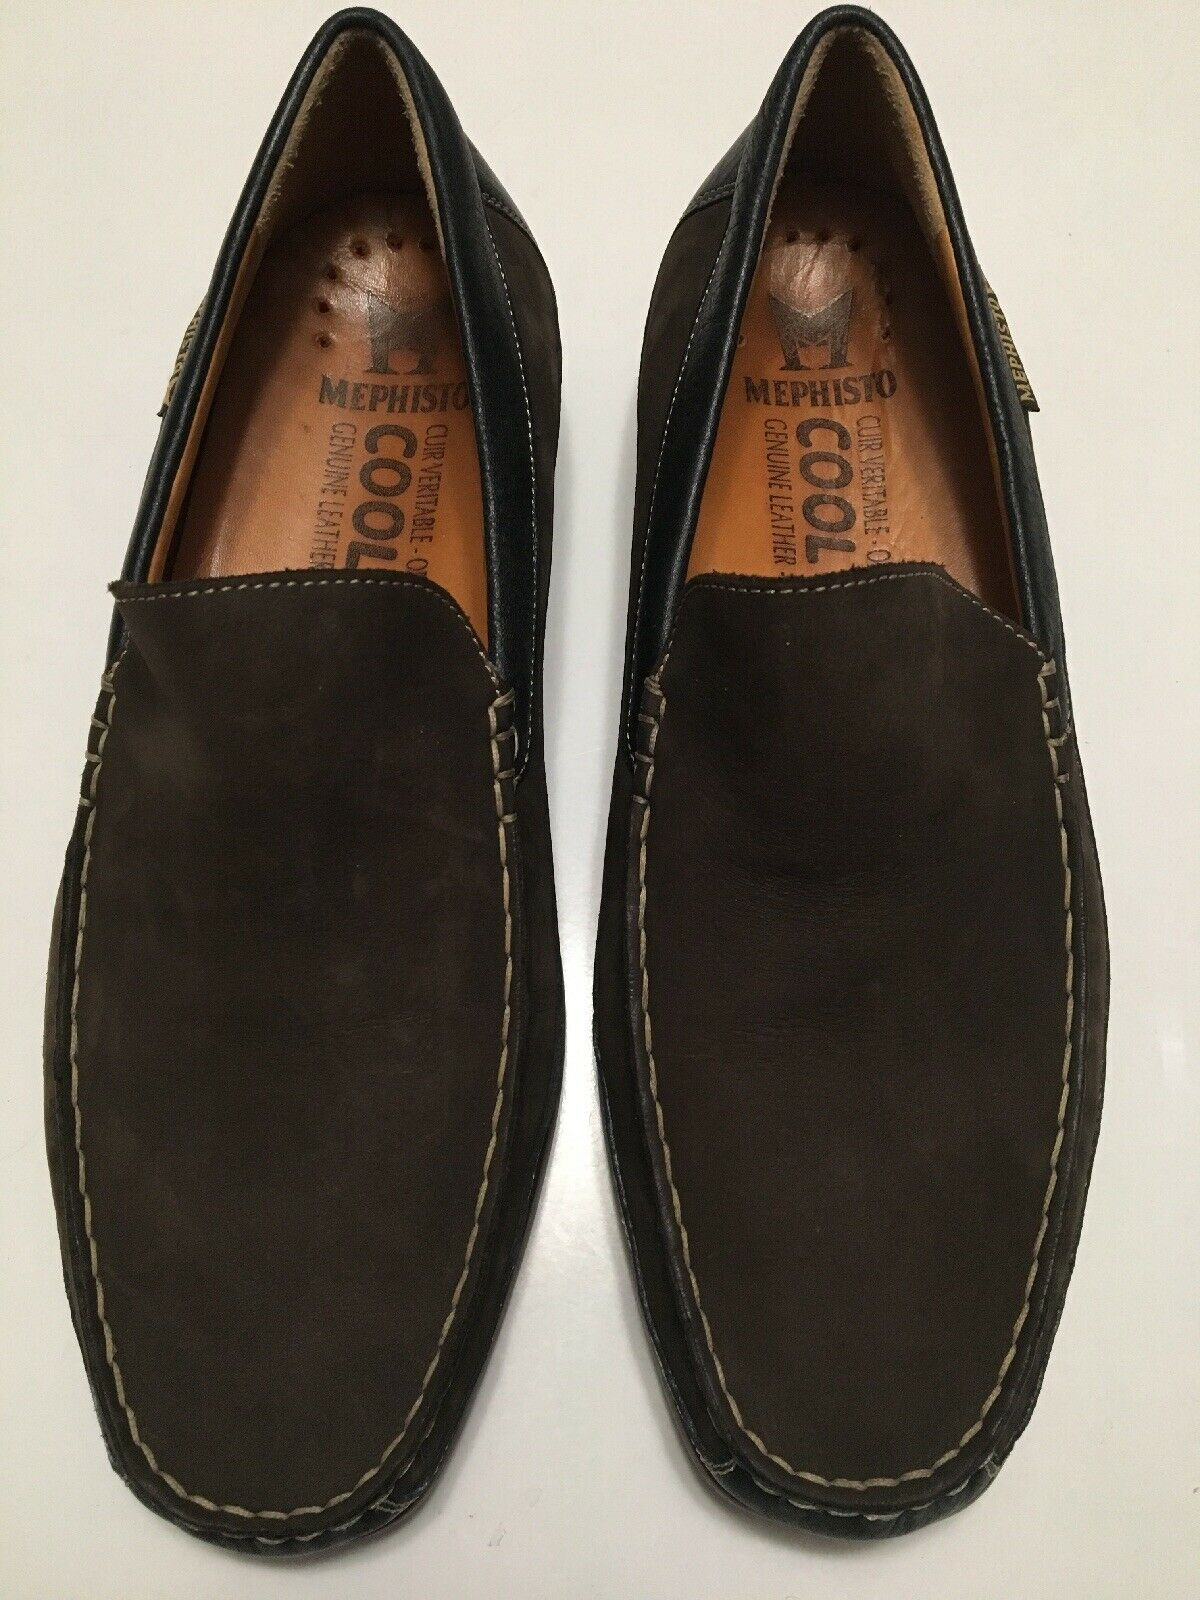 300 Mephisto Baduard Brown Black Leather Cool Air Loafers Men's Size 9 MINT